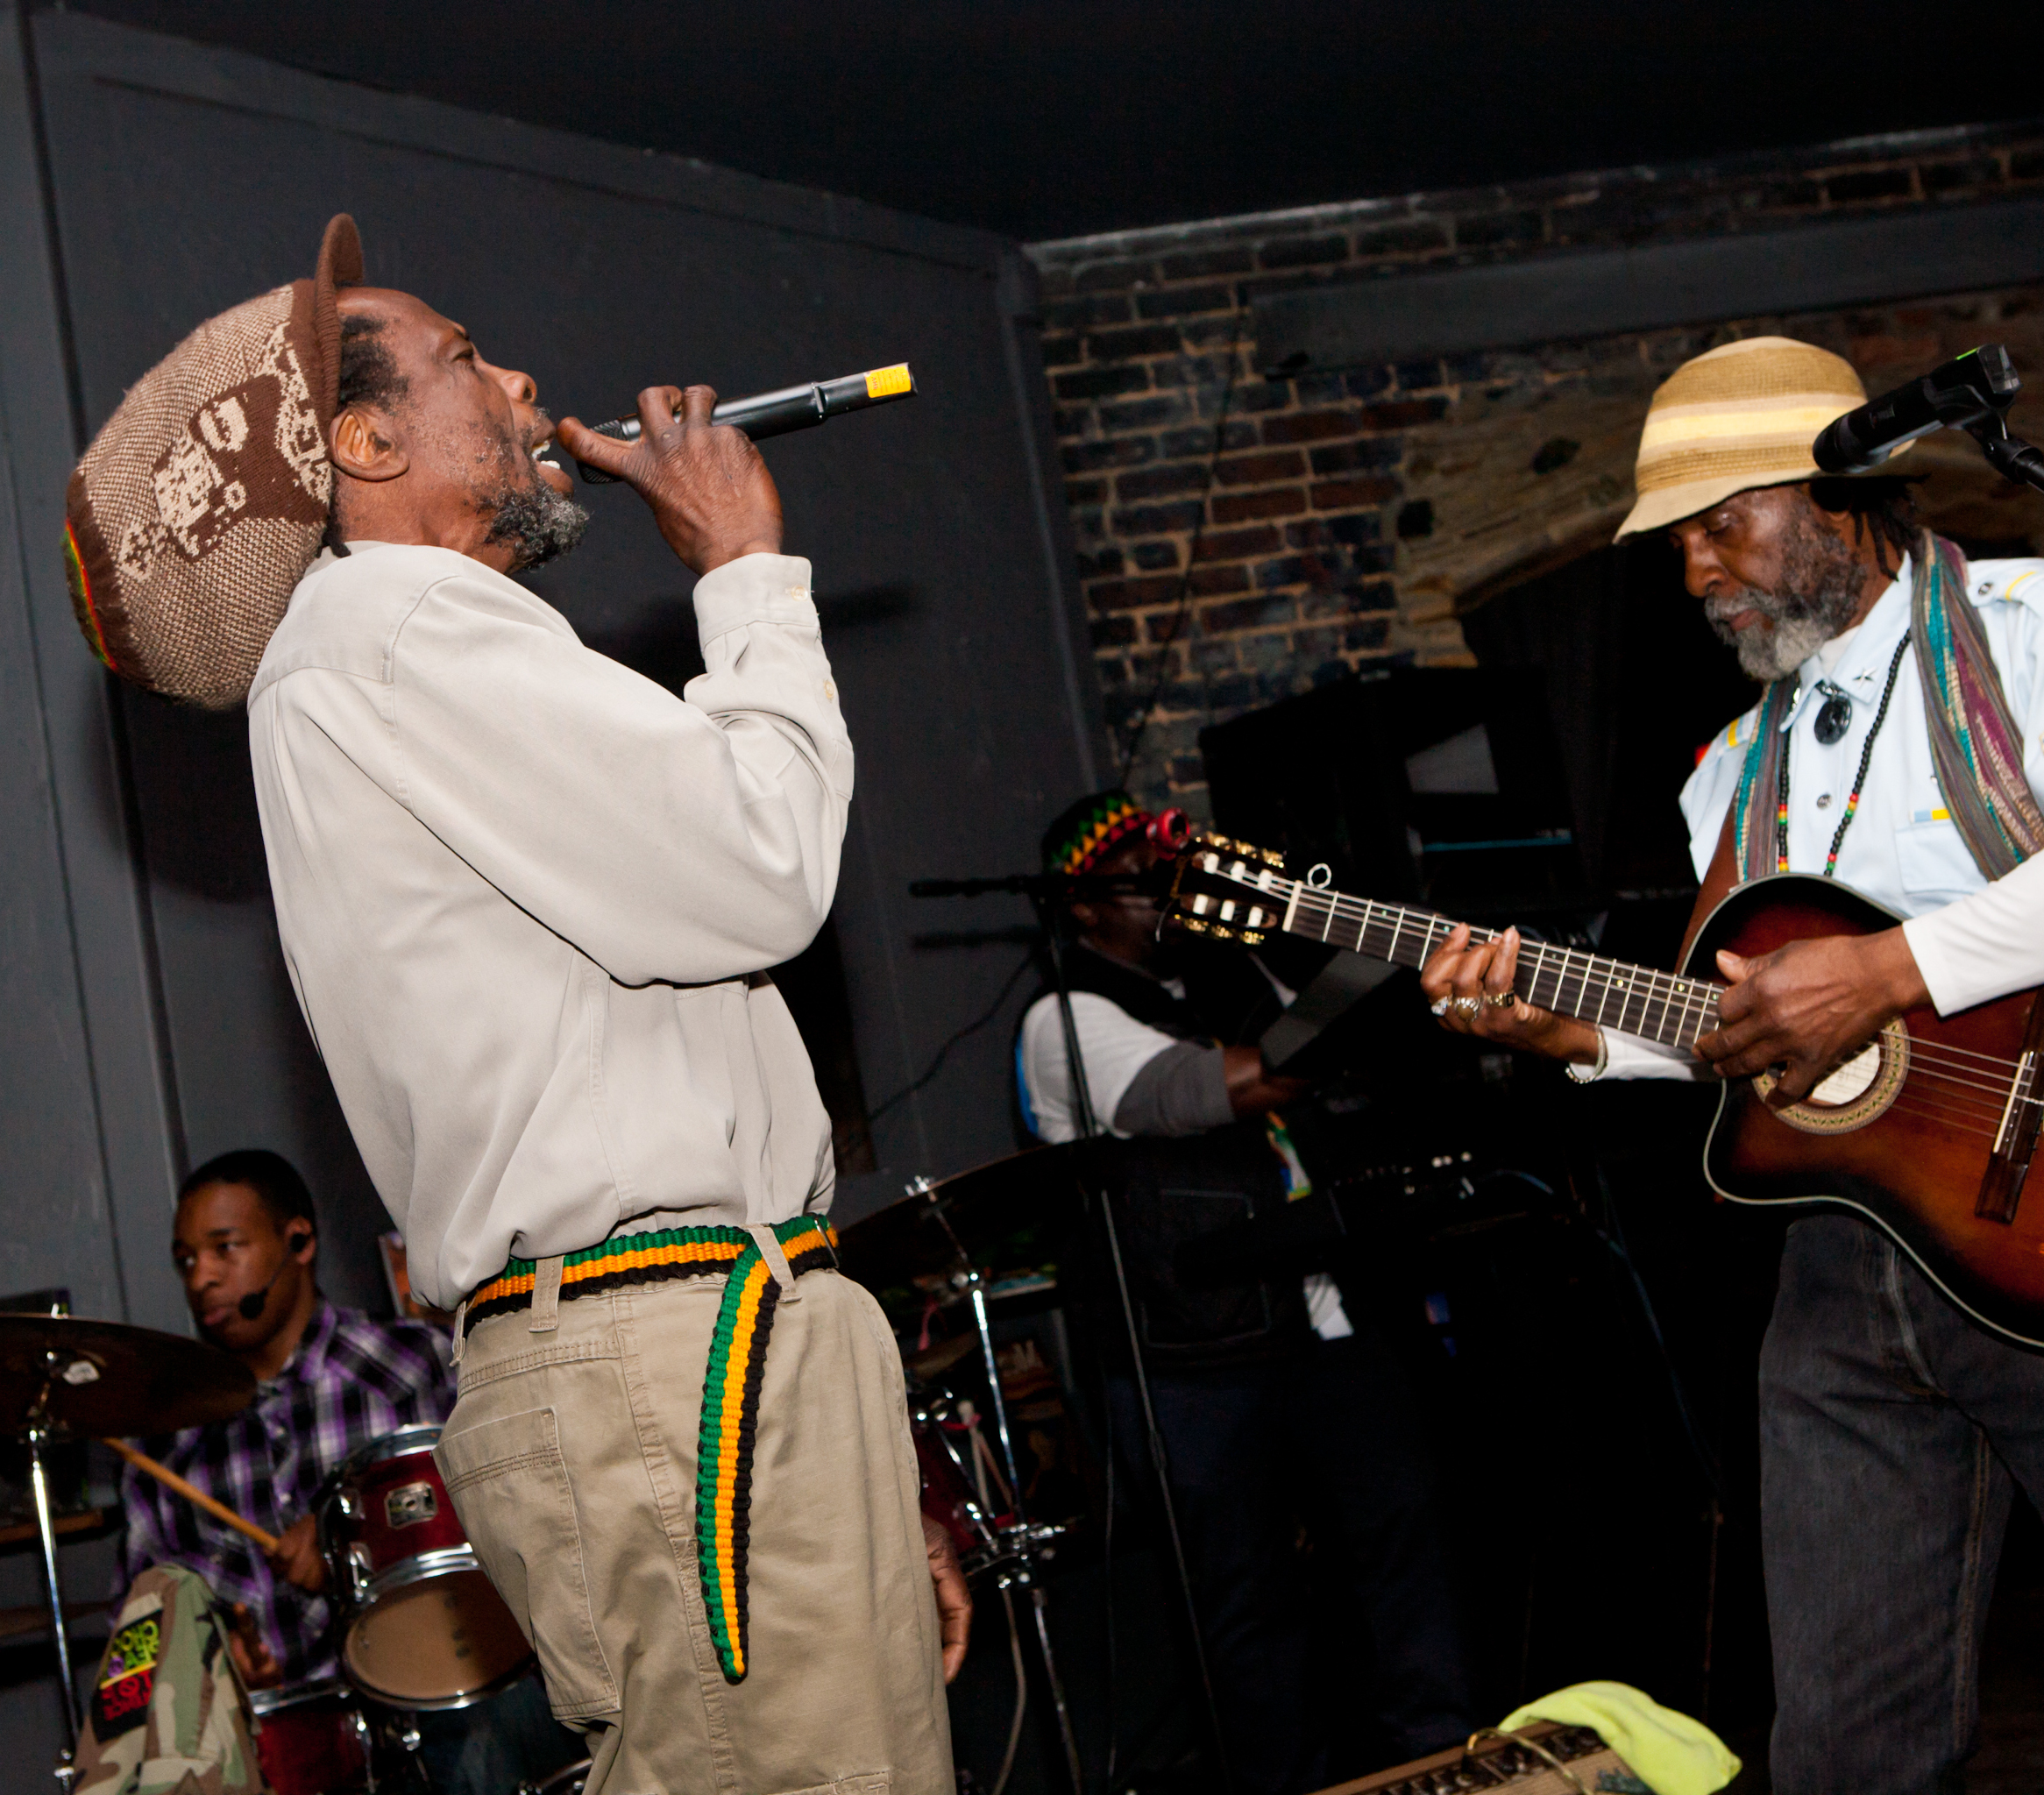 Ijahknowah and his band, B.R.A.P